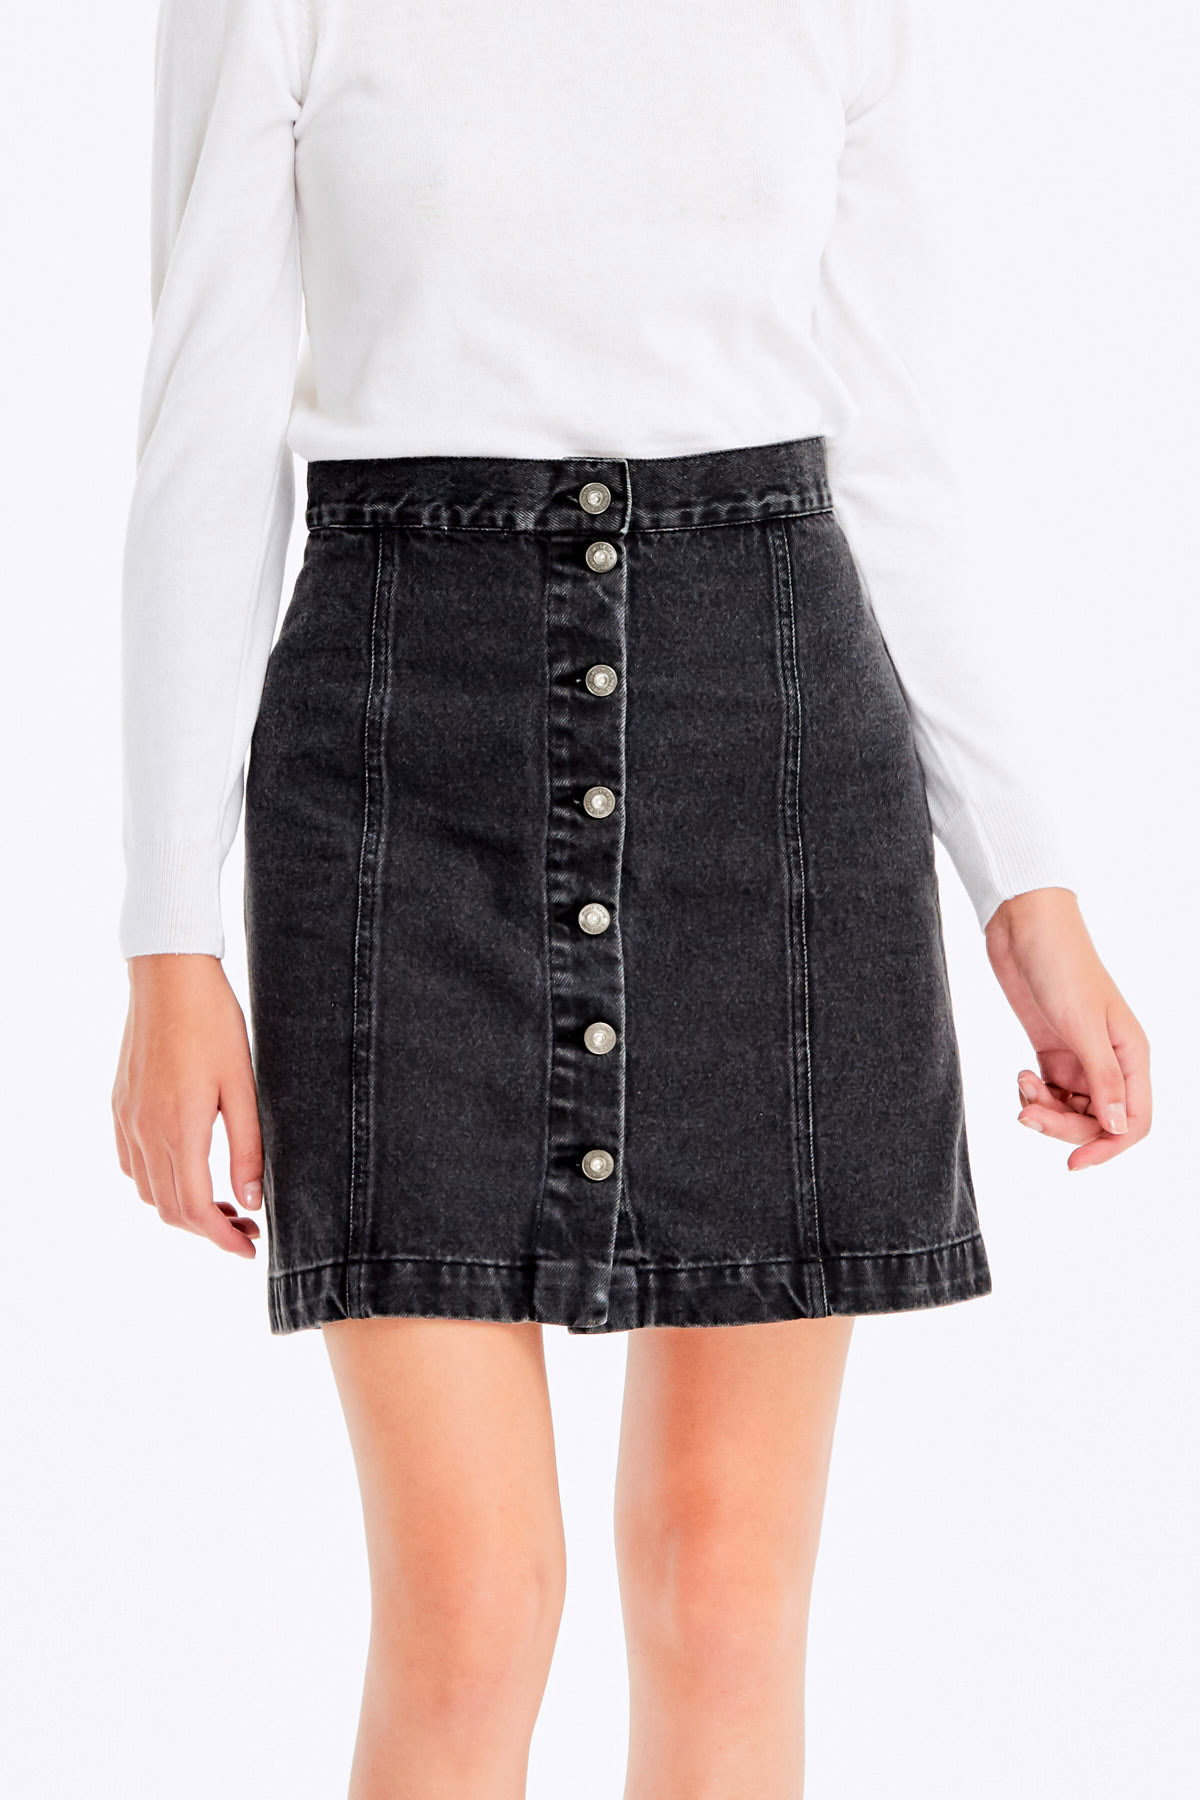 973d355b9b07 Black jeans skirt with buttons photo 1 - MustHave online store